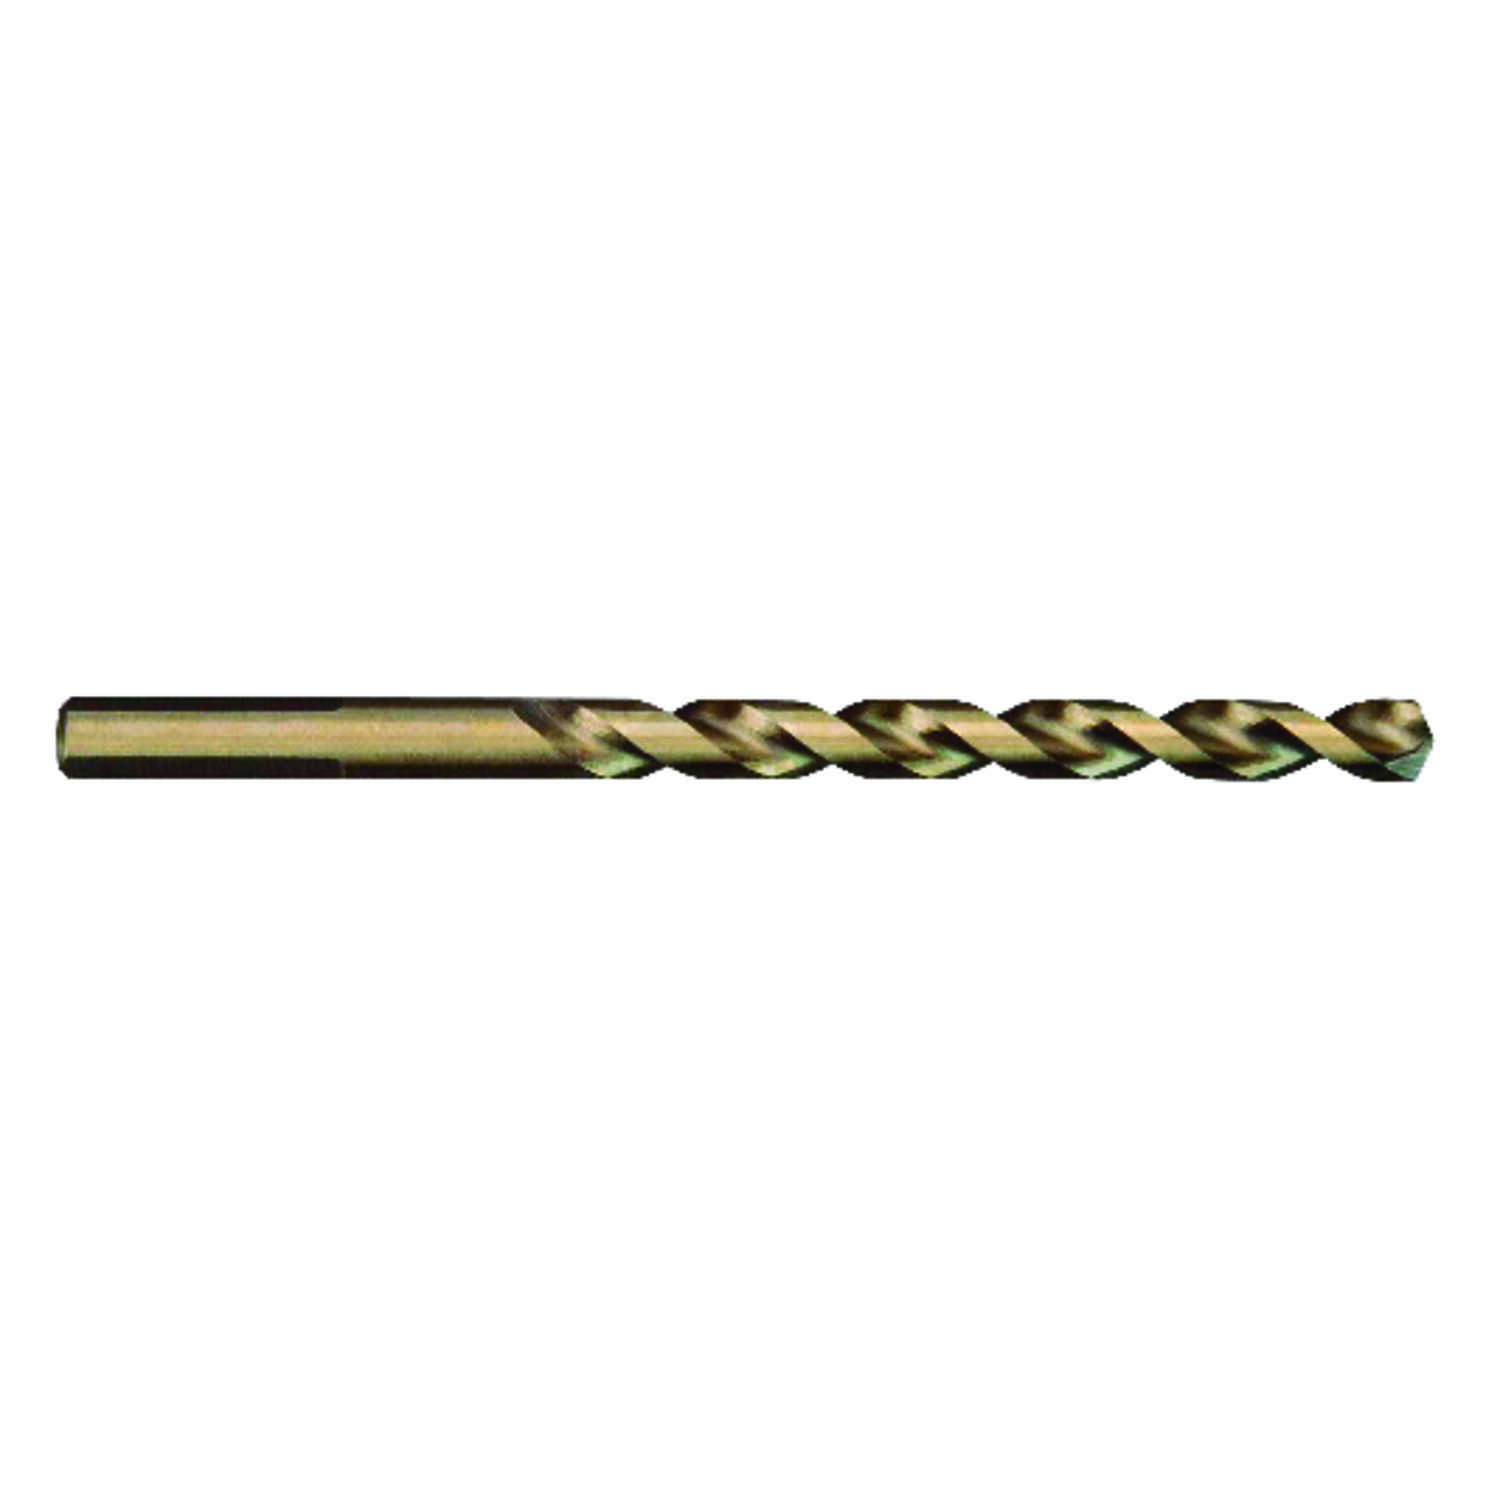 Milwaukee  RED HELIX  3/16 in. Dia. x 3-1/2 in. L Cobalt Steel  THUNDERBOLT  Drill Bit  1 pc.